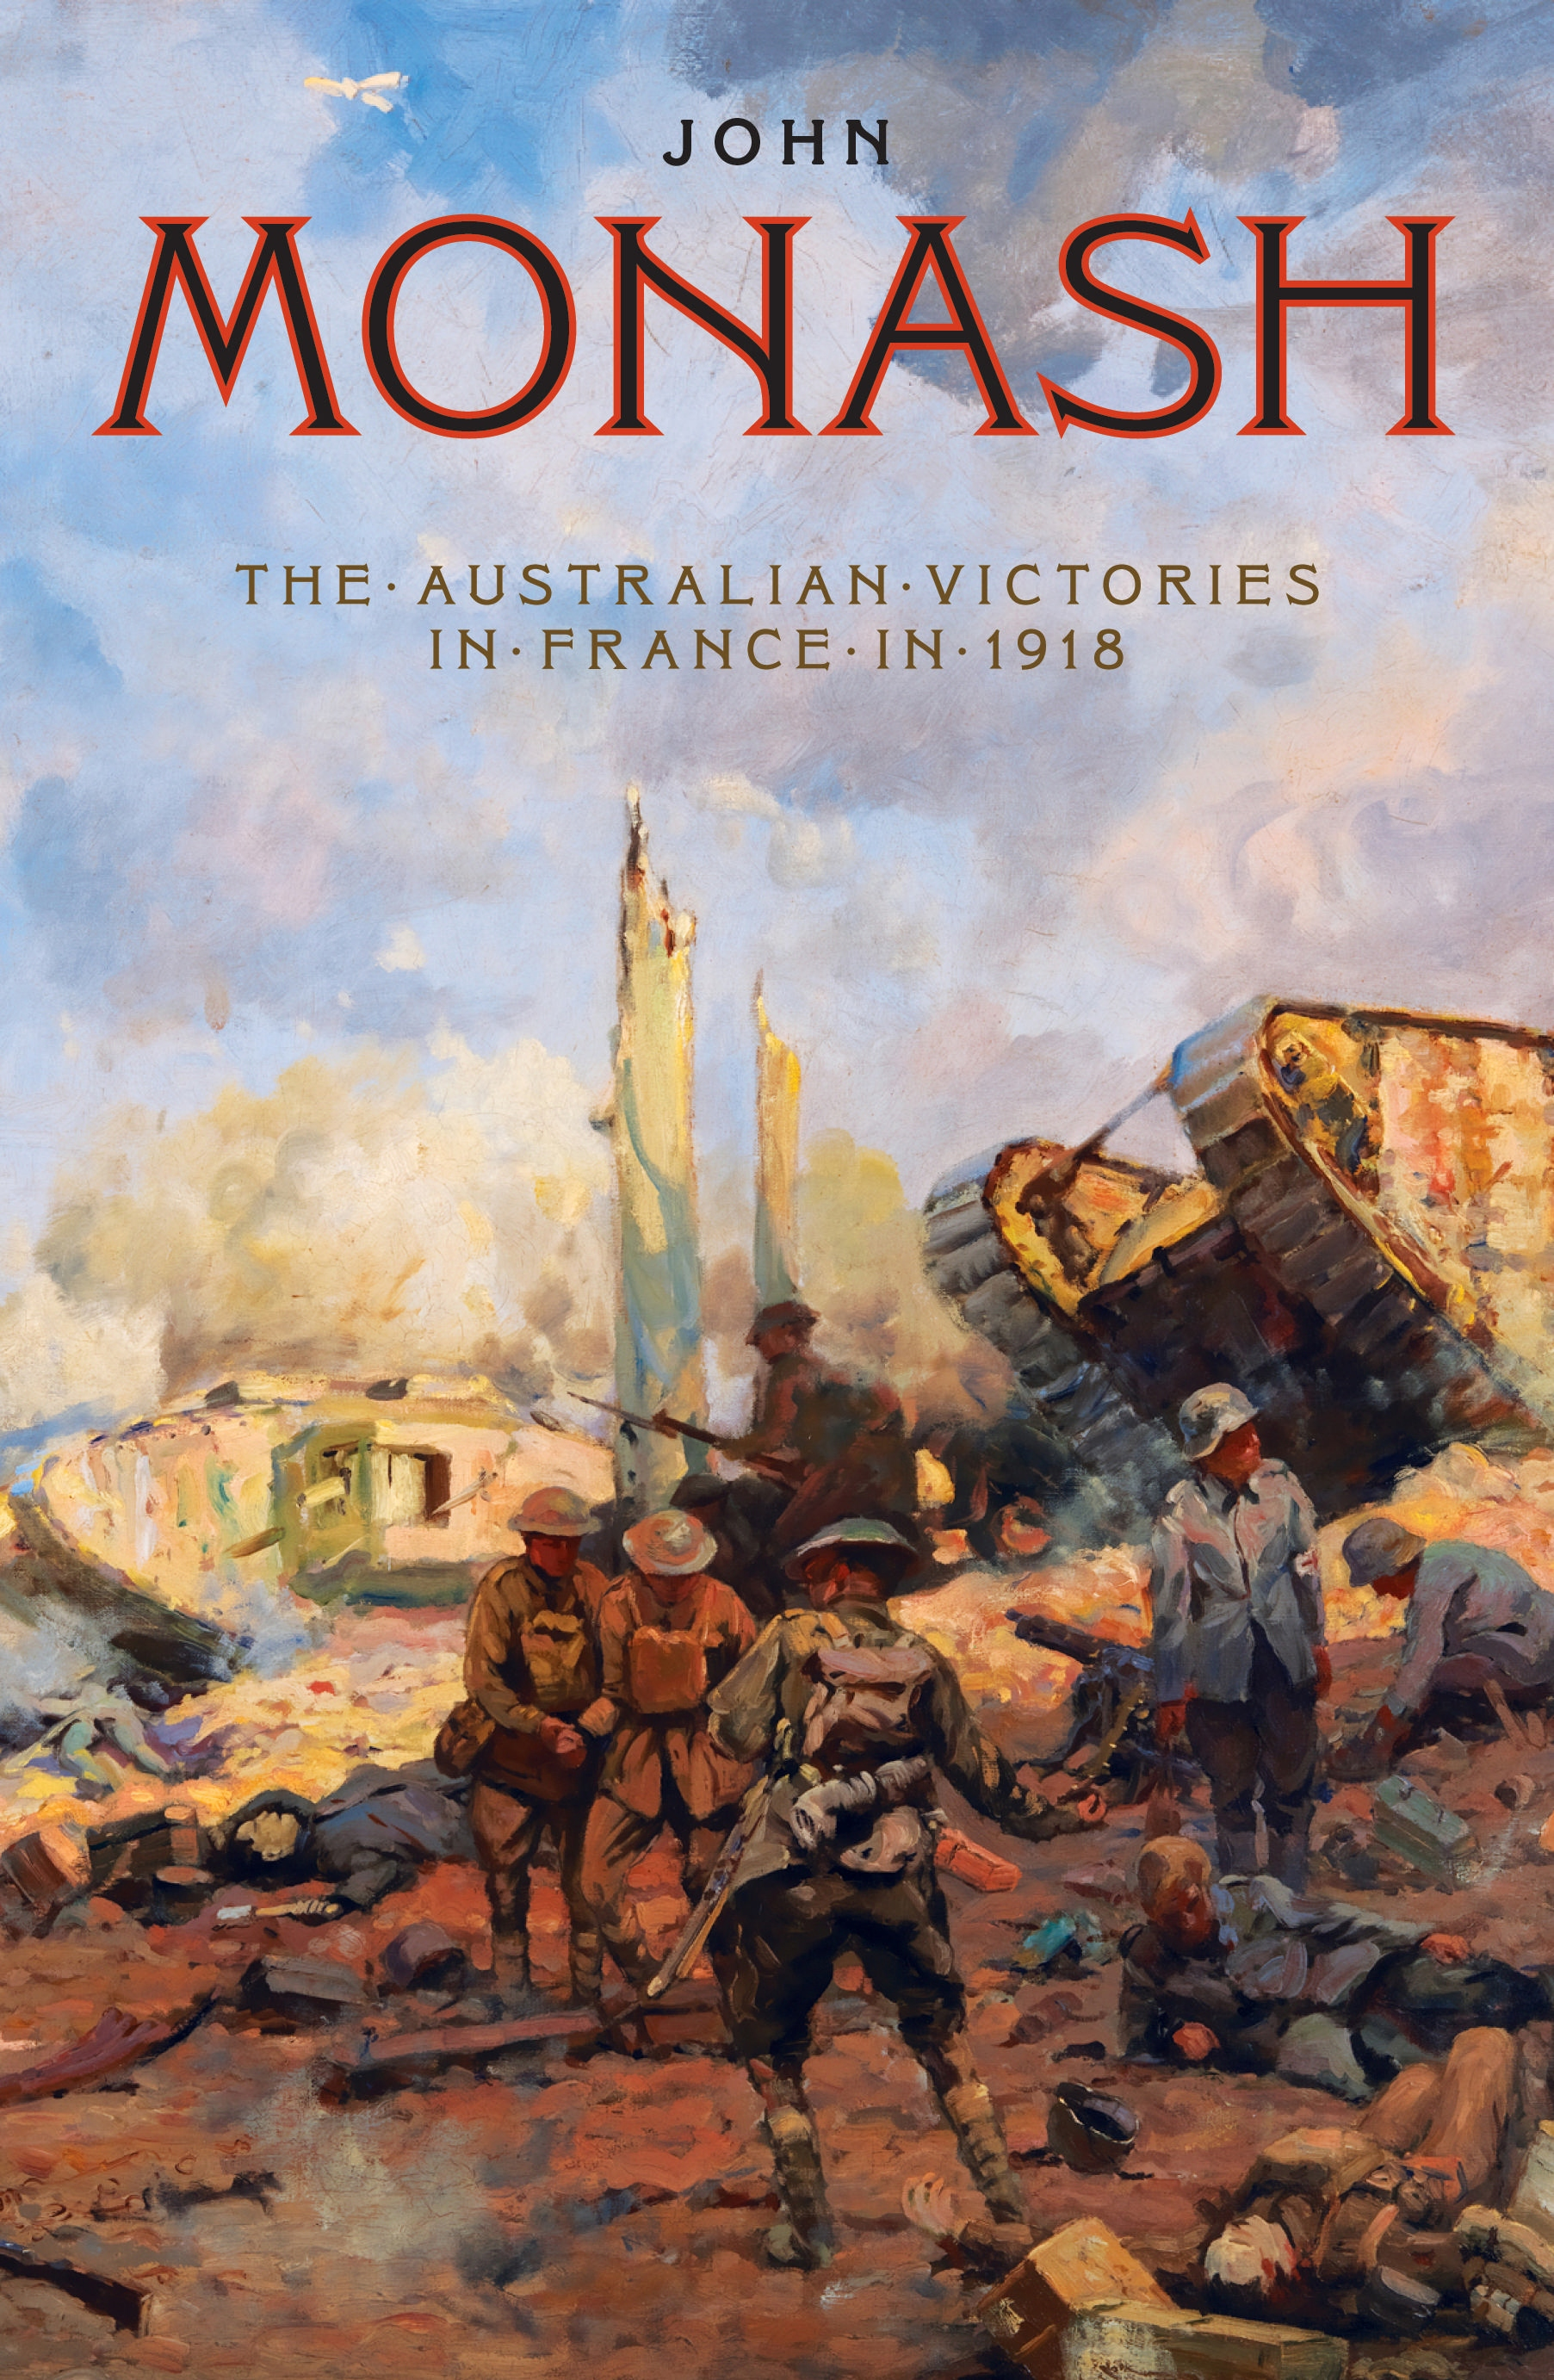 The Australian Victories in France in 1918 by Sir John Monash, ISBN: 9781863957458